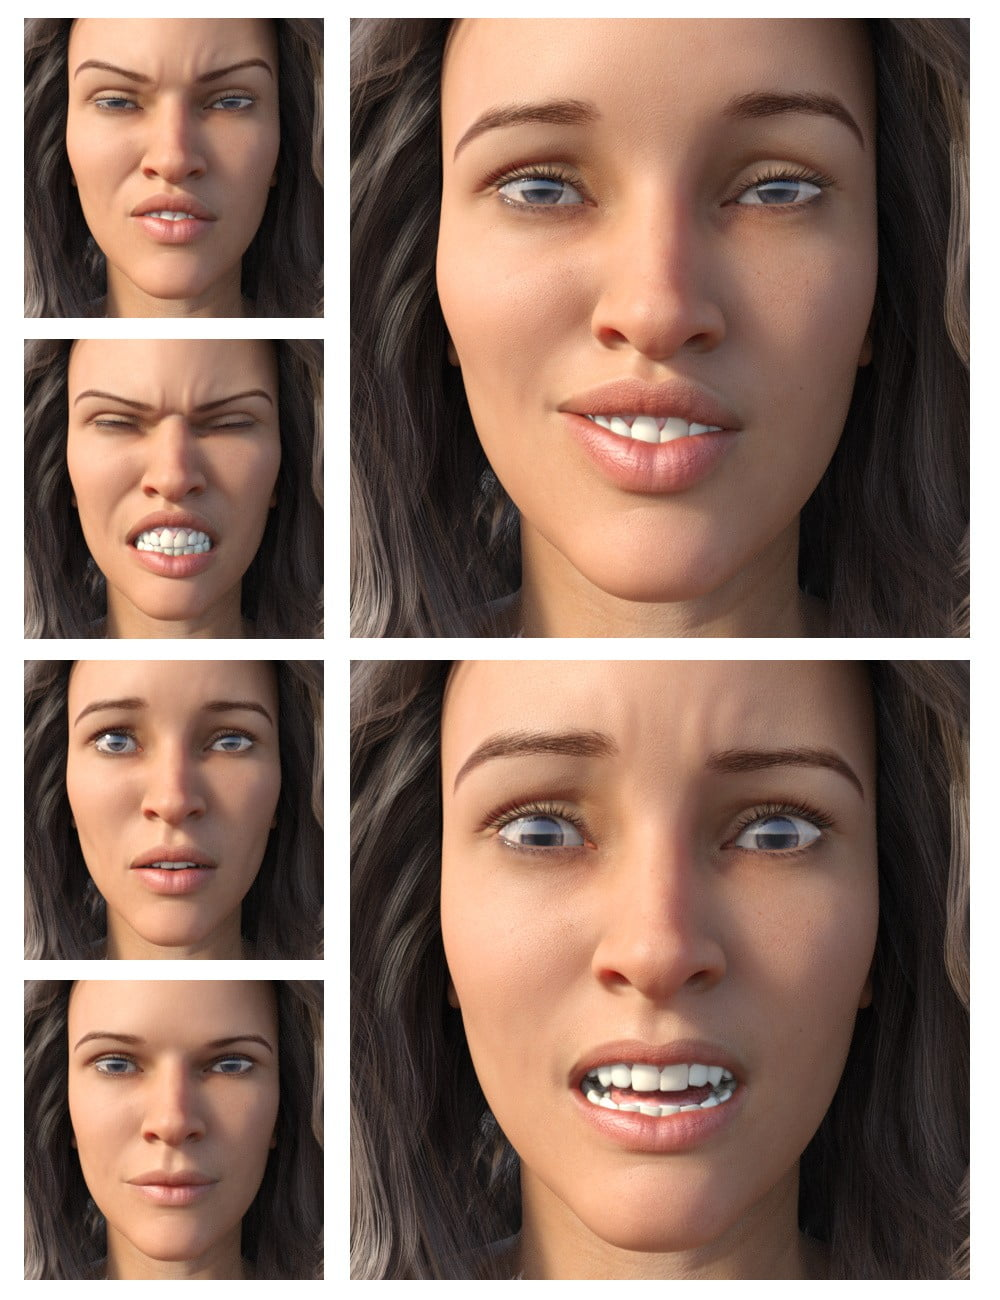 ACTION STAR Expressions for Gia 8